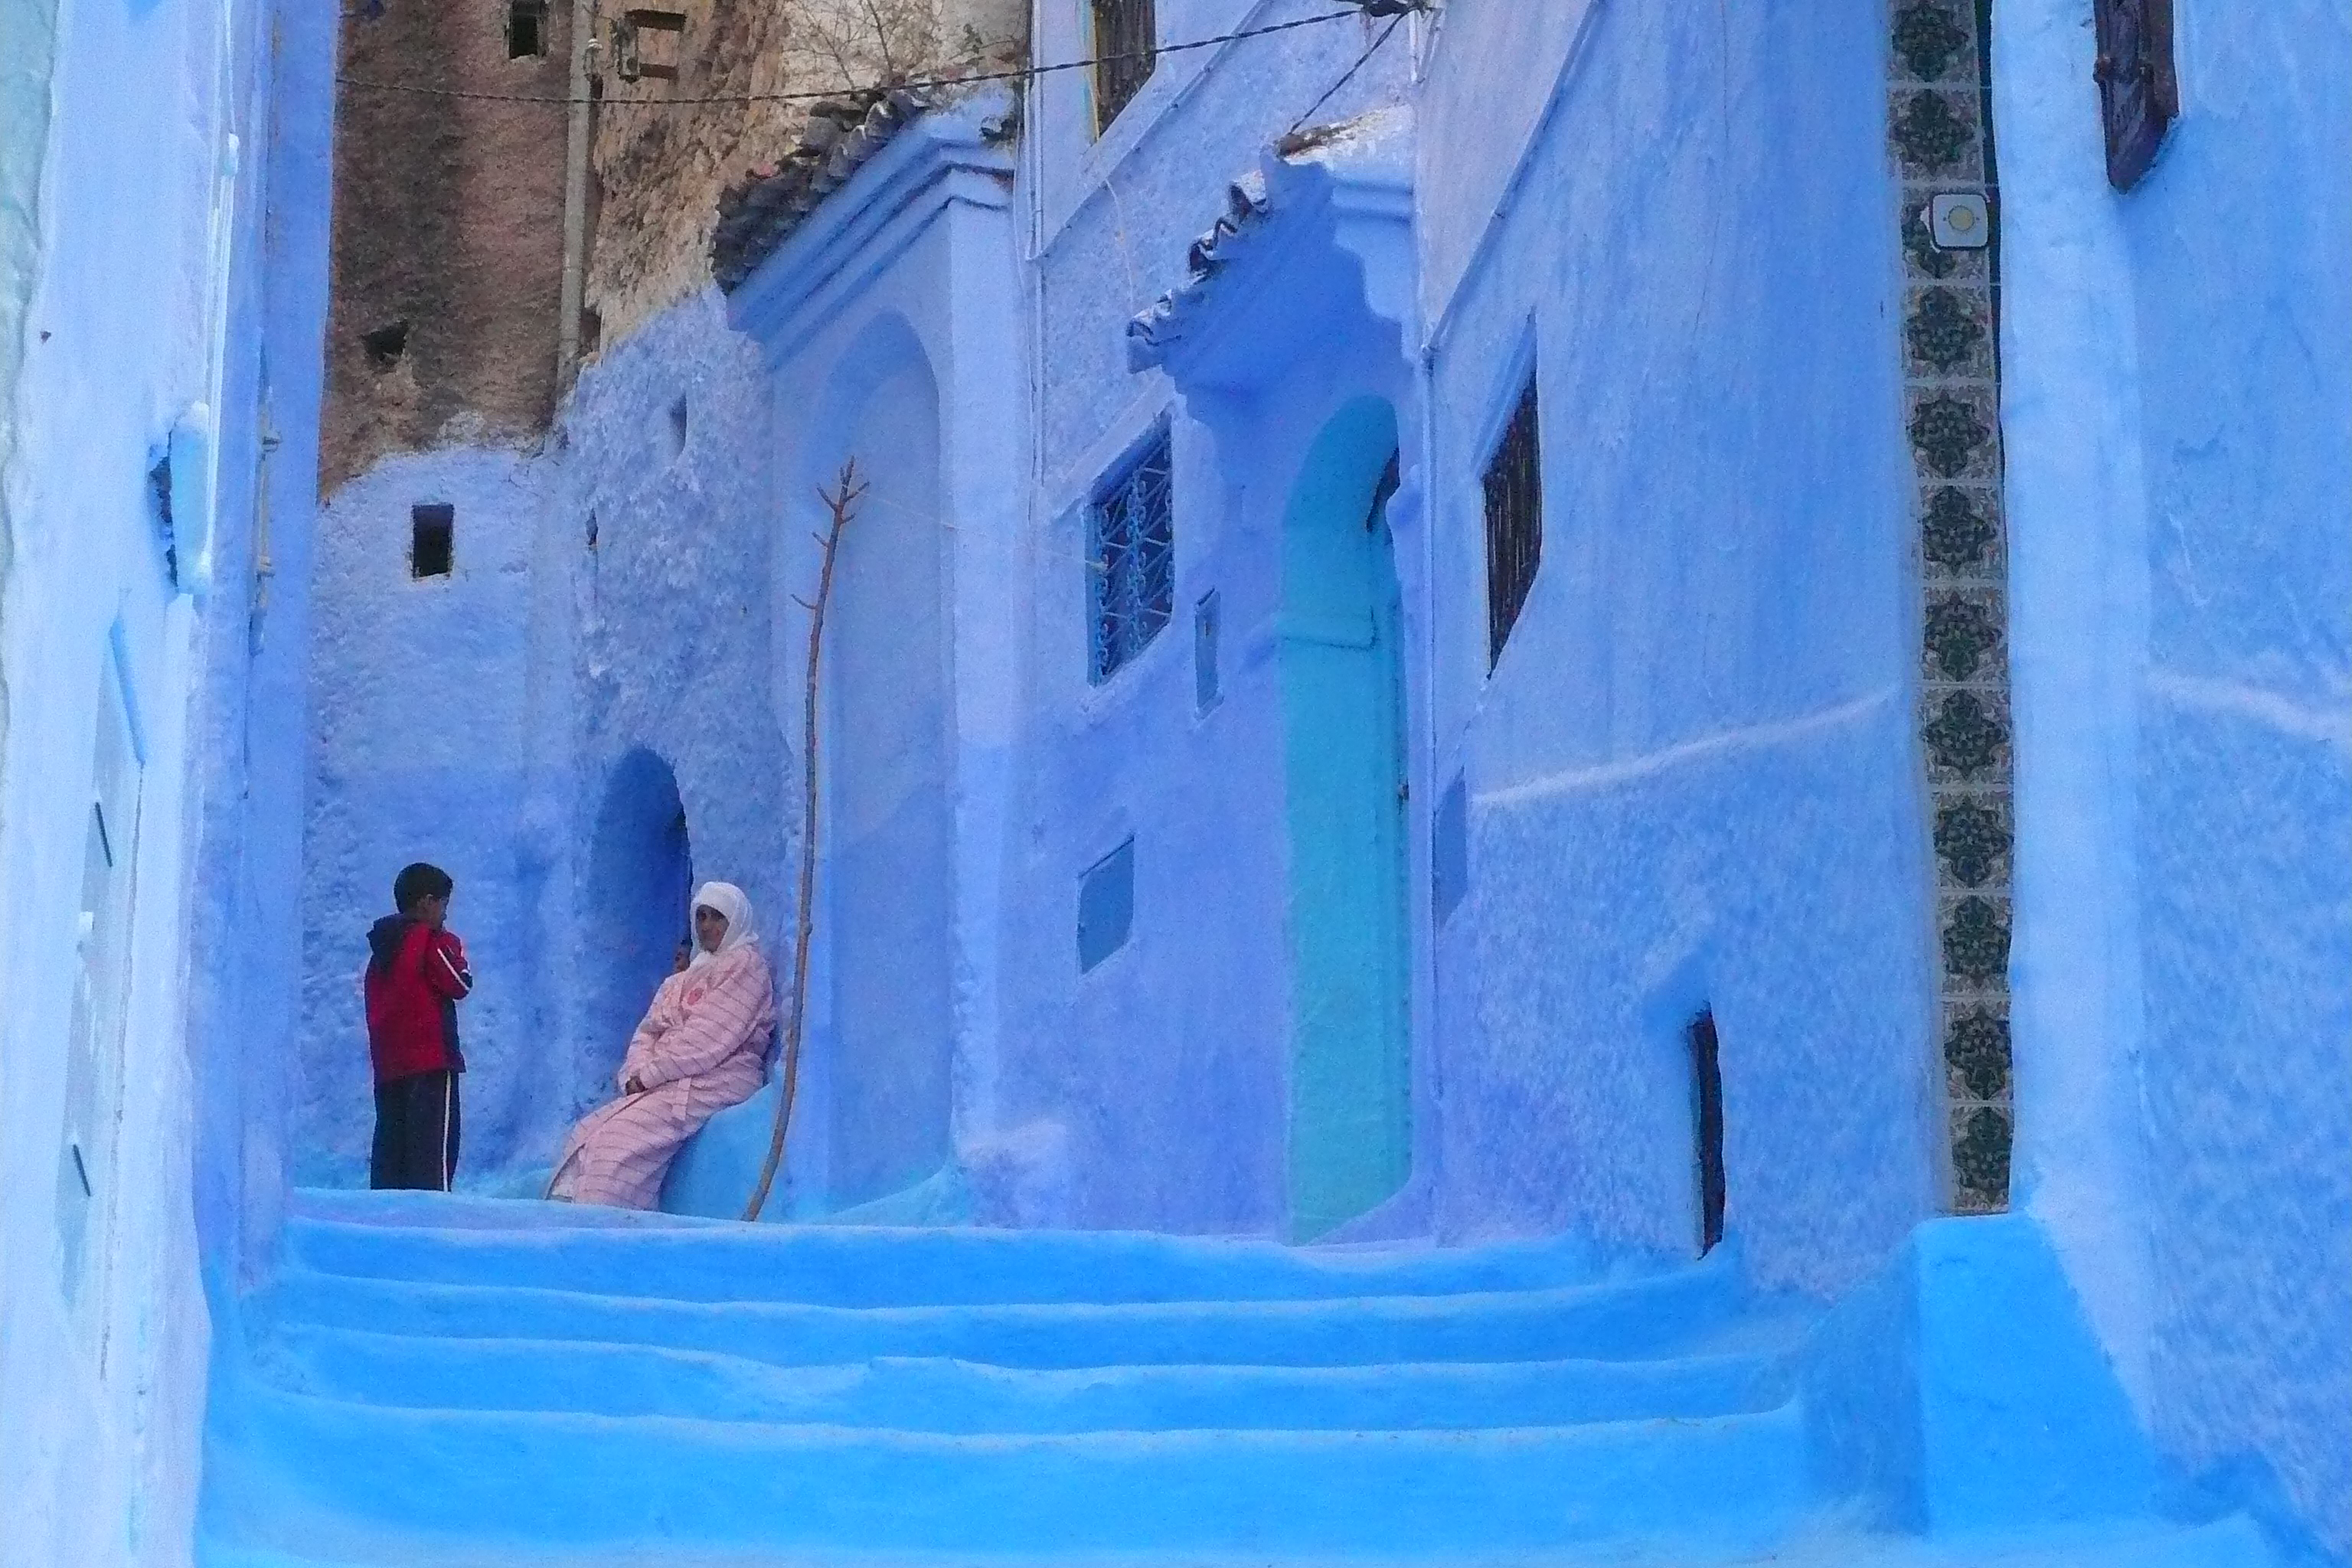 Chefchaouen Morocco  city images : chefchaouen morocco 4